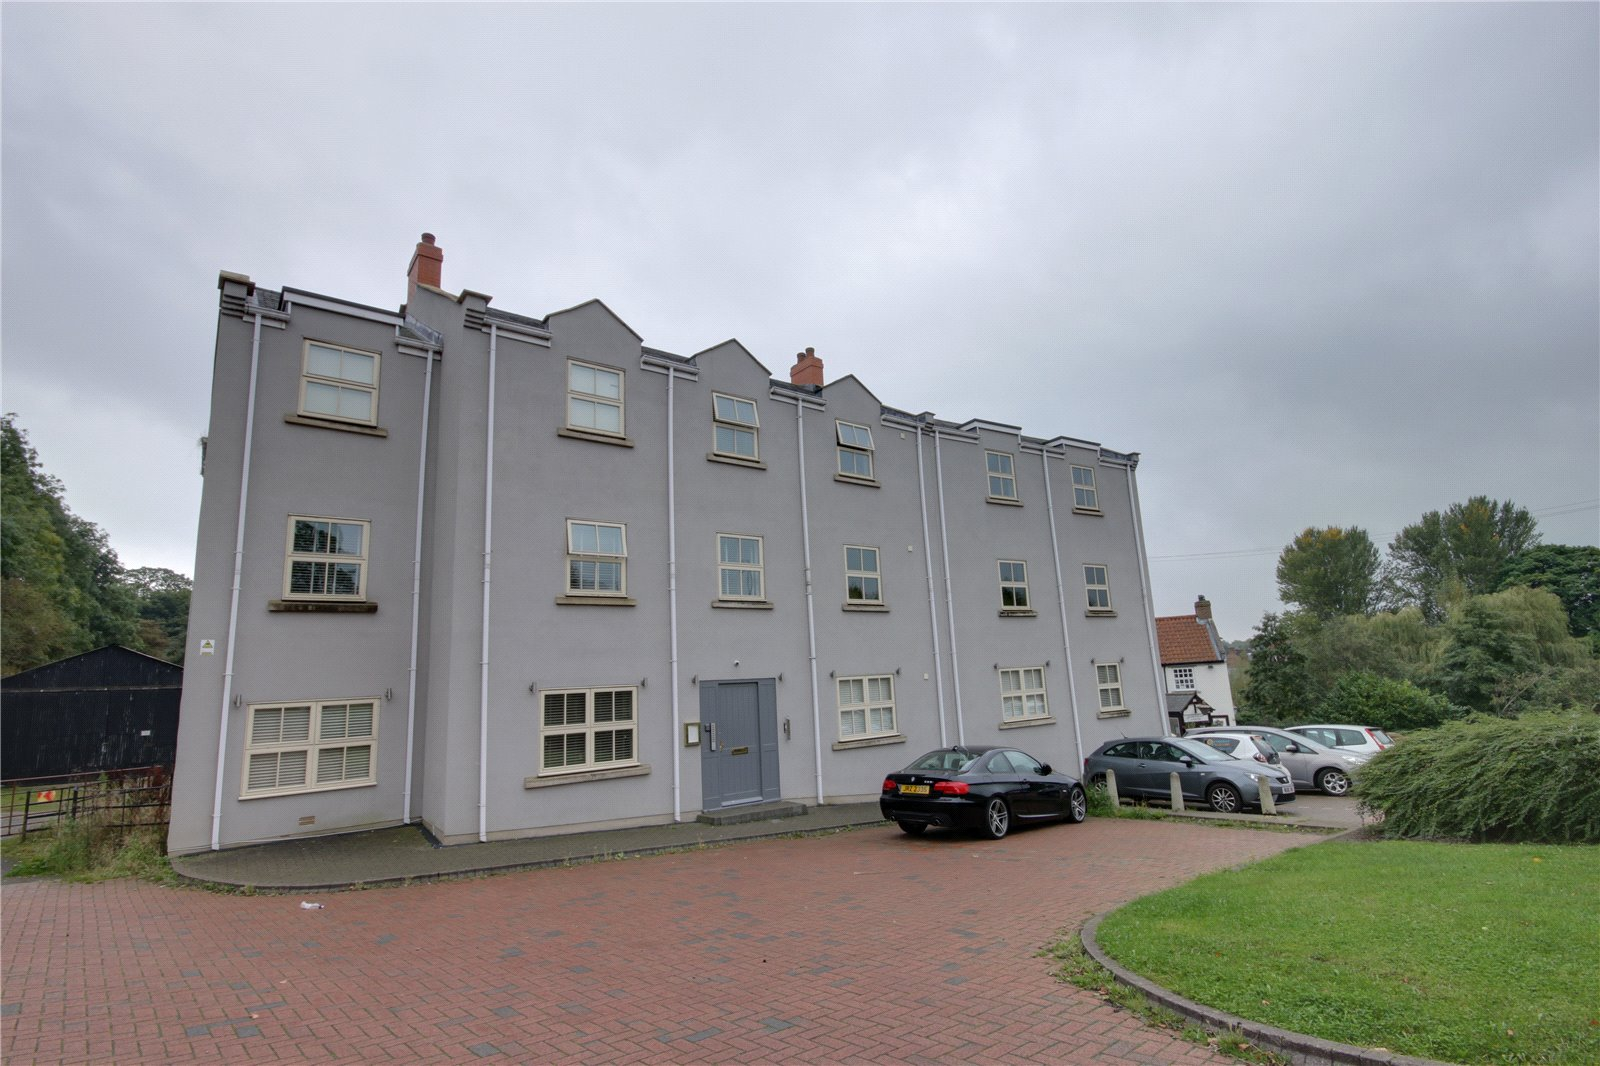 2 bed to rent in Yarm Manor, Eaglescliffe - Property Image 1